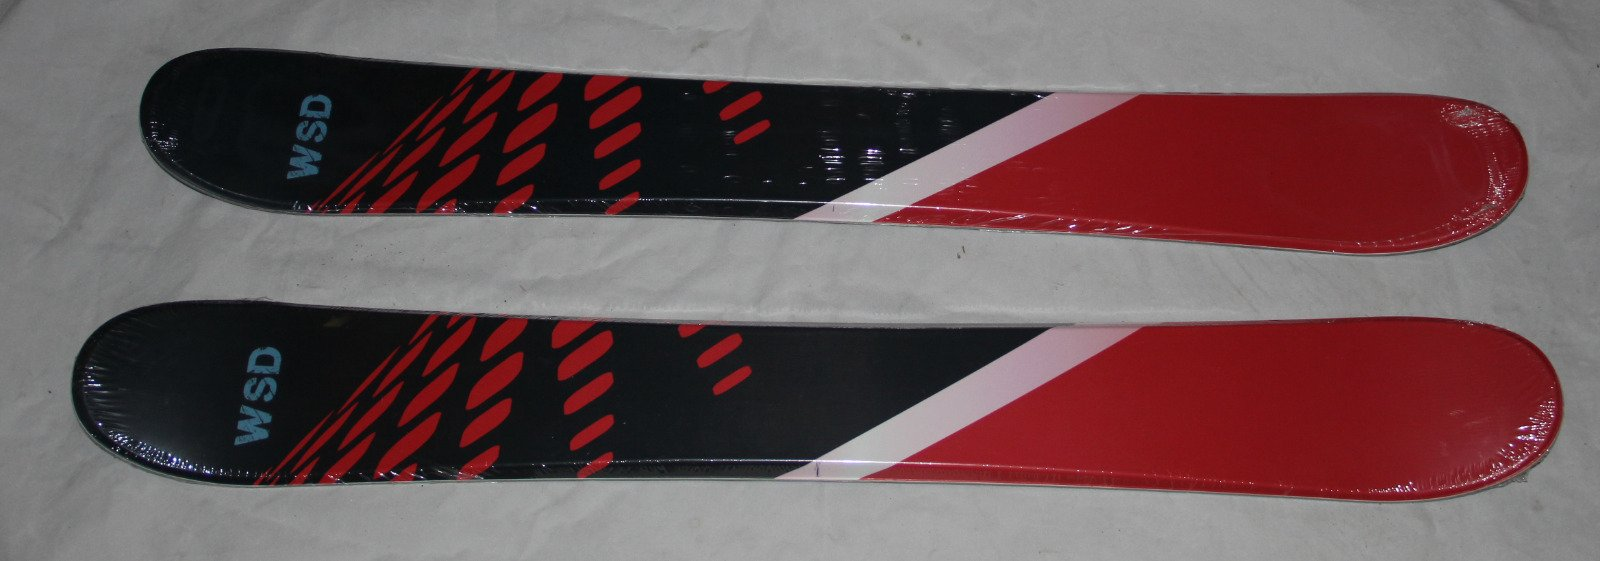 WSD Ski Boards Wide Ski Boards Pair, Red by WSD